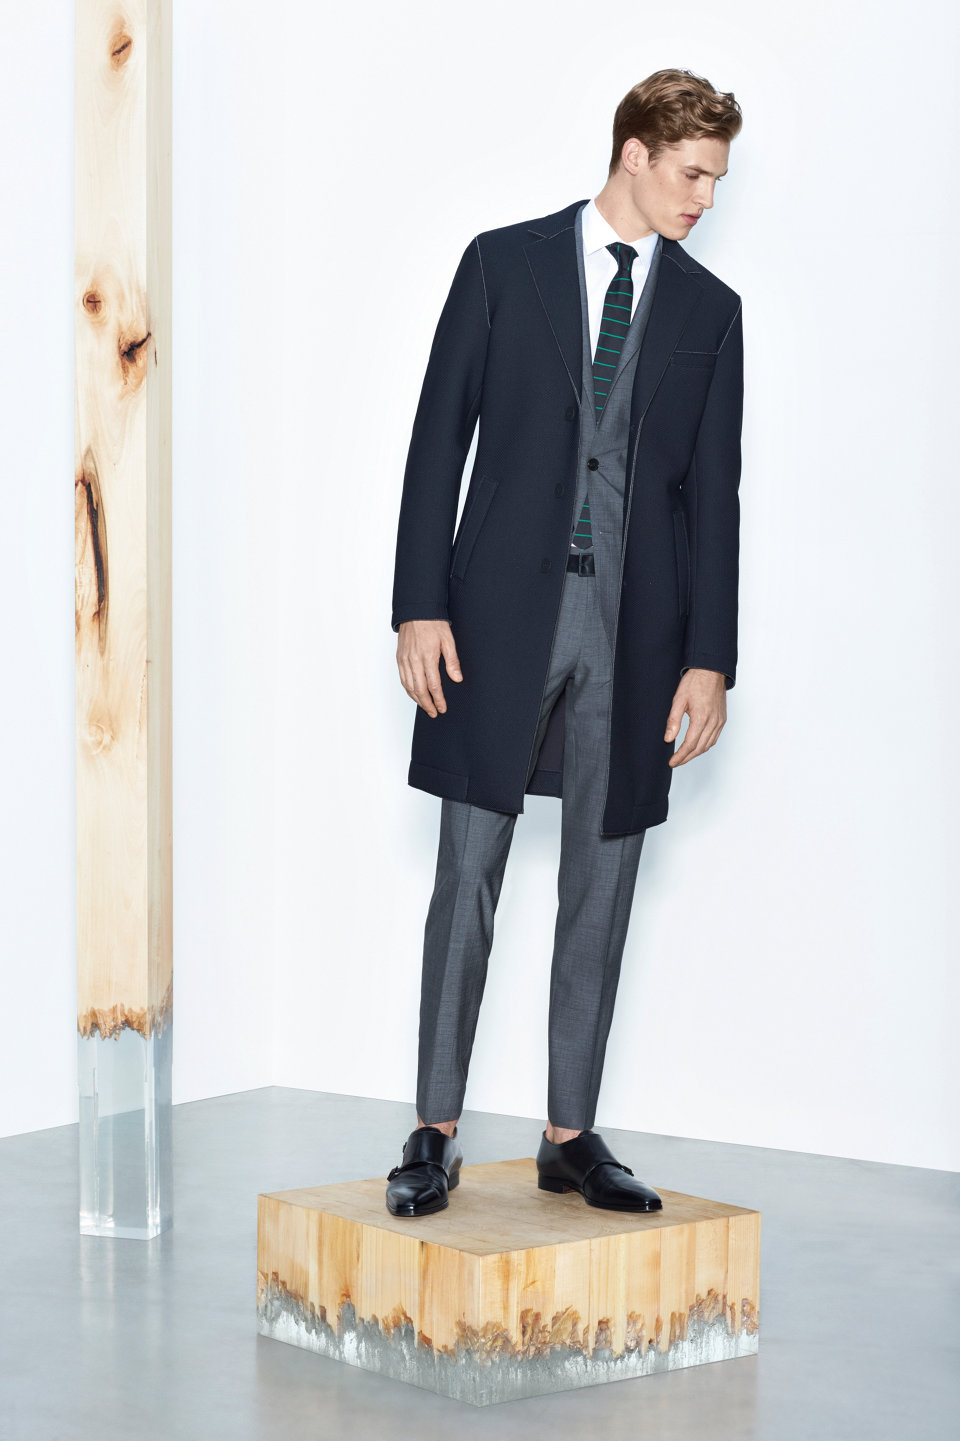 Black coat, grey suit and black shoes by BOSS